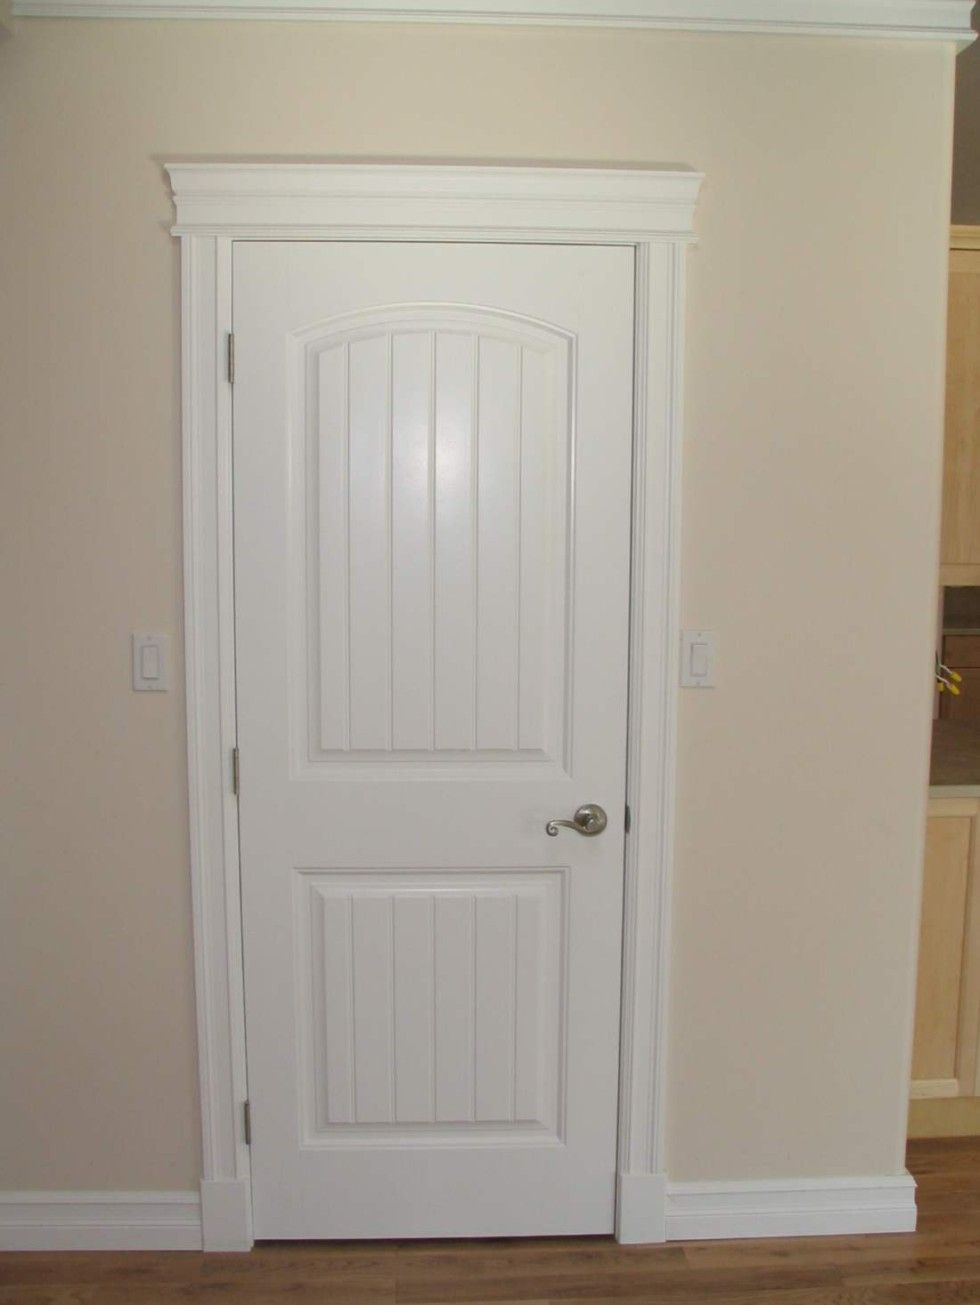 Door trim living room pinterest door trims interior door door trim ideas lowes interior doors wicked door casing styles with lowes door trim design ideas and modern trim planetlyrics Images